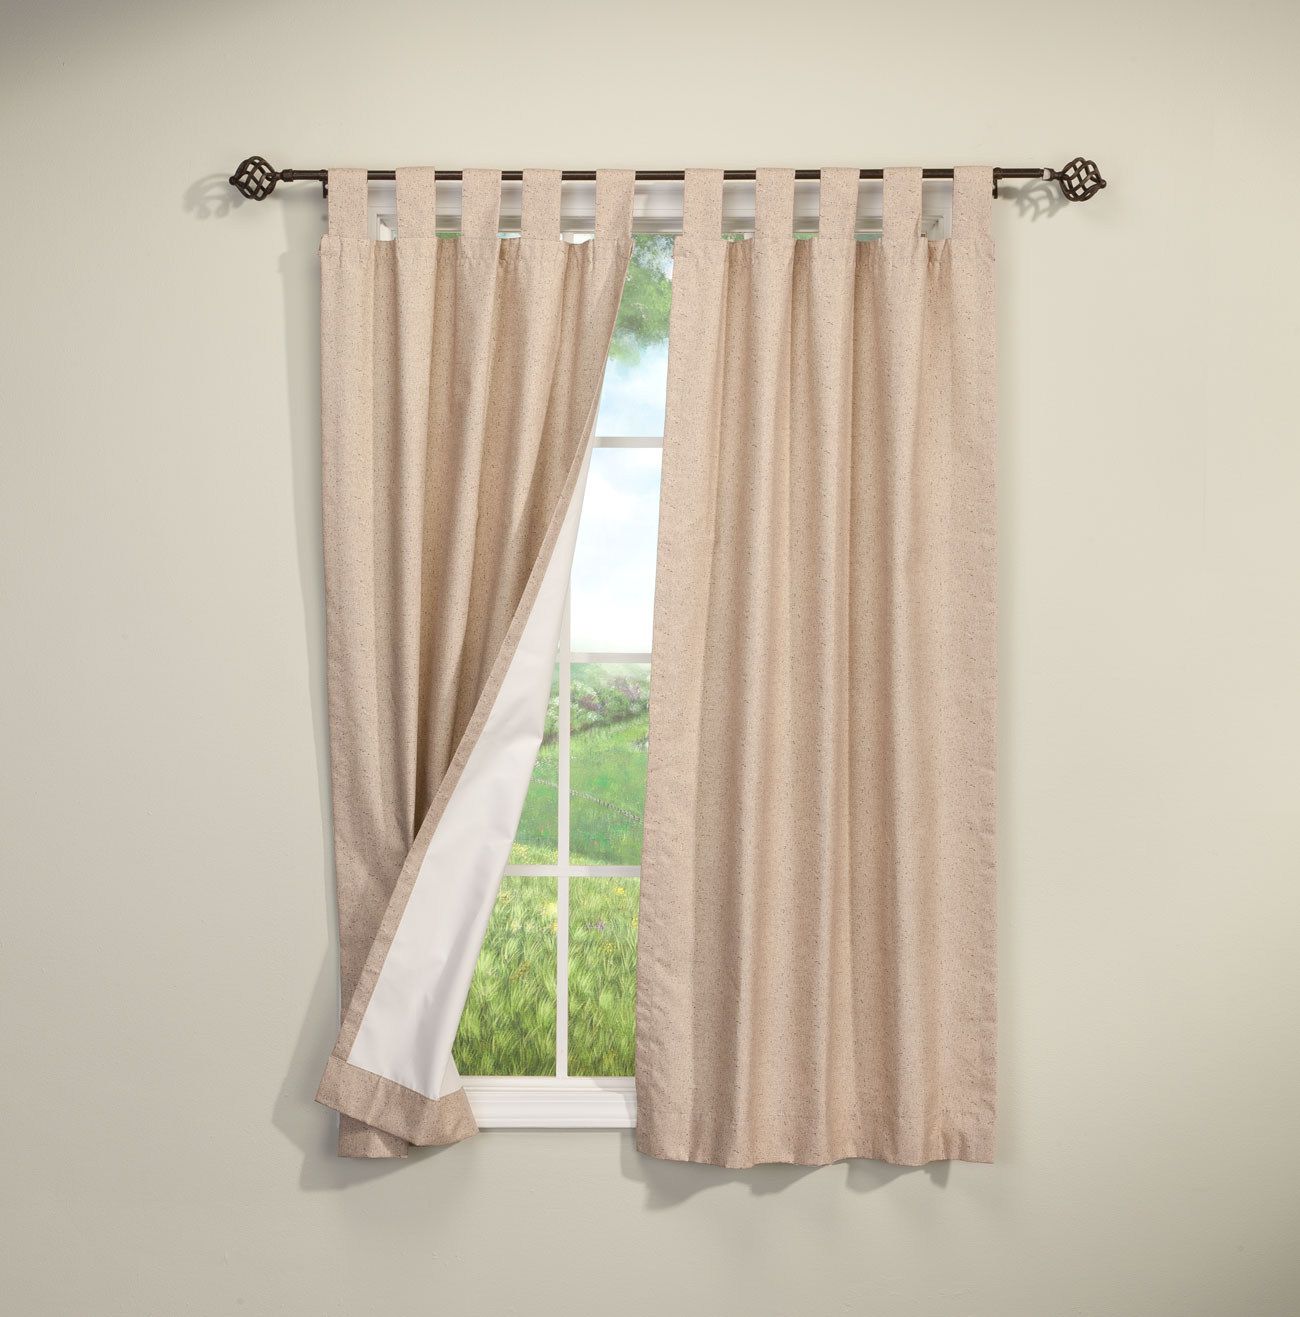 Tab Top Curtain Details About Energy Saving Tab Top Curtains Set Of 2